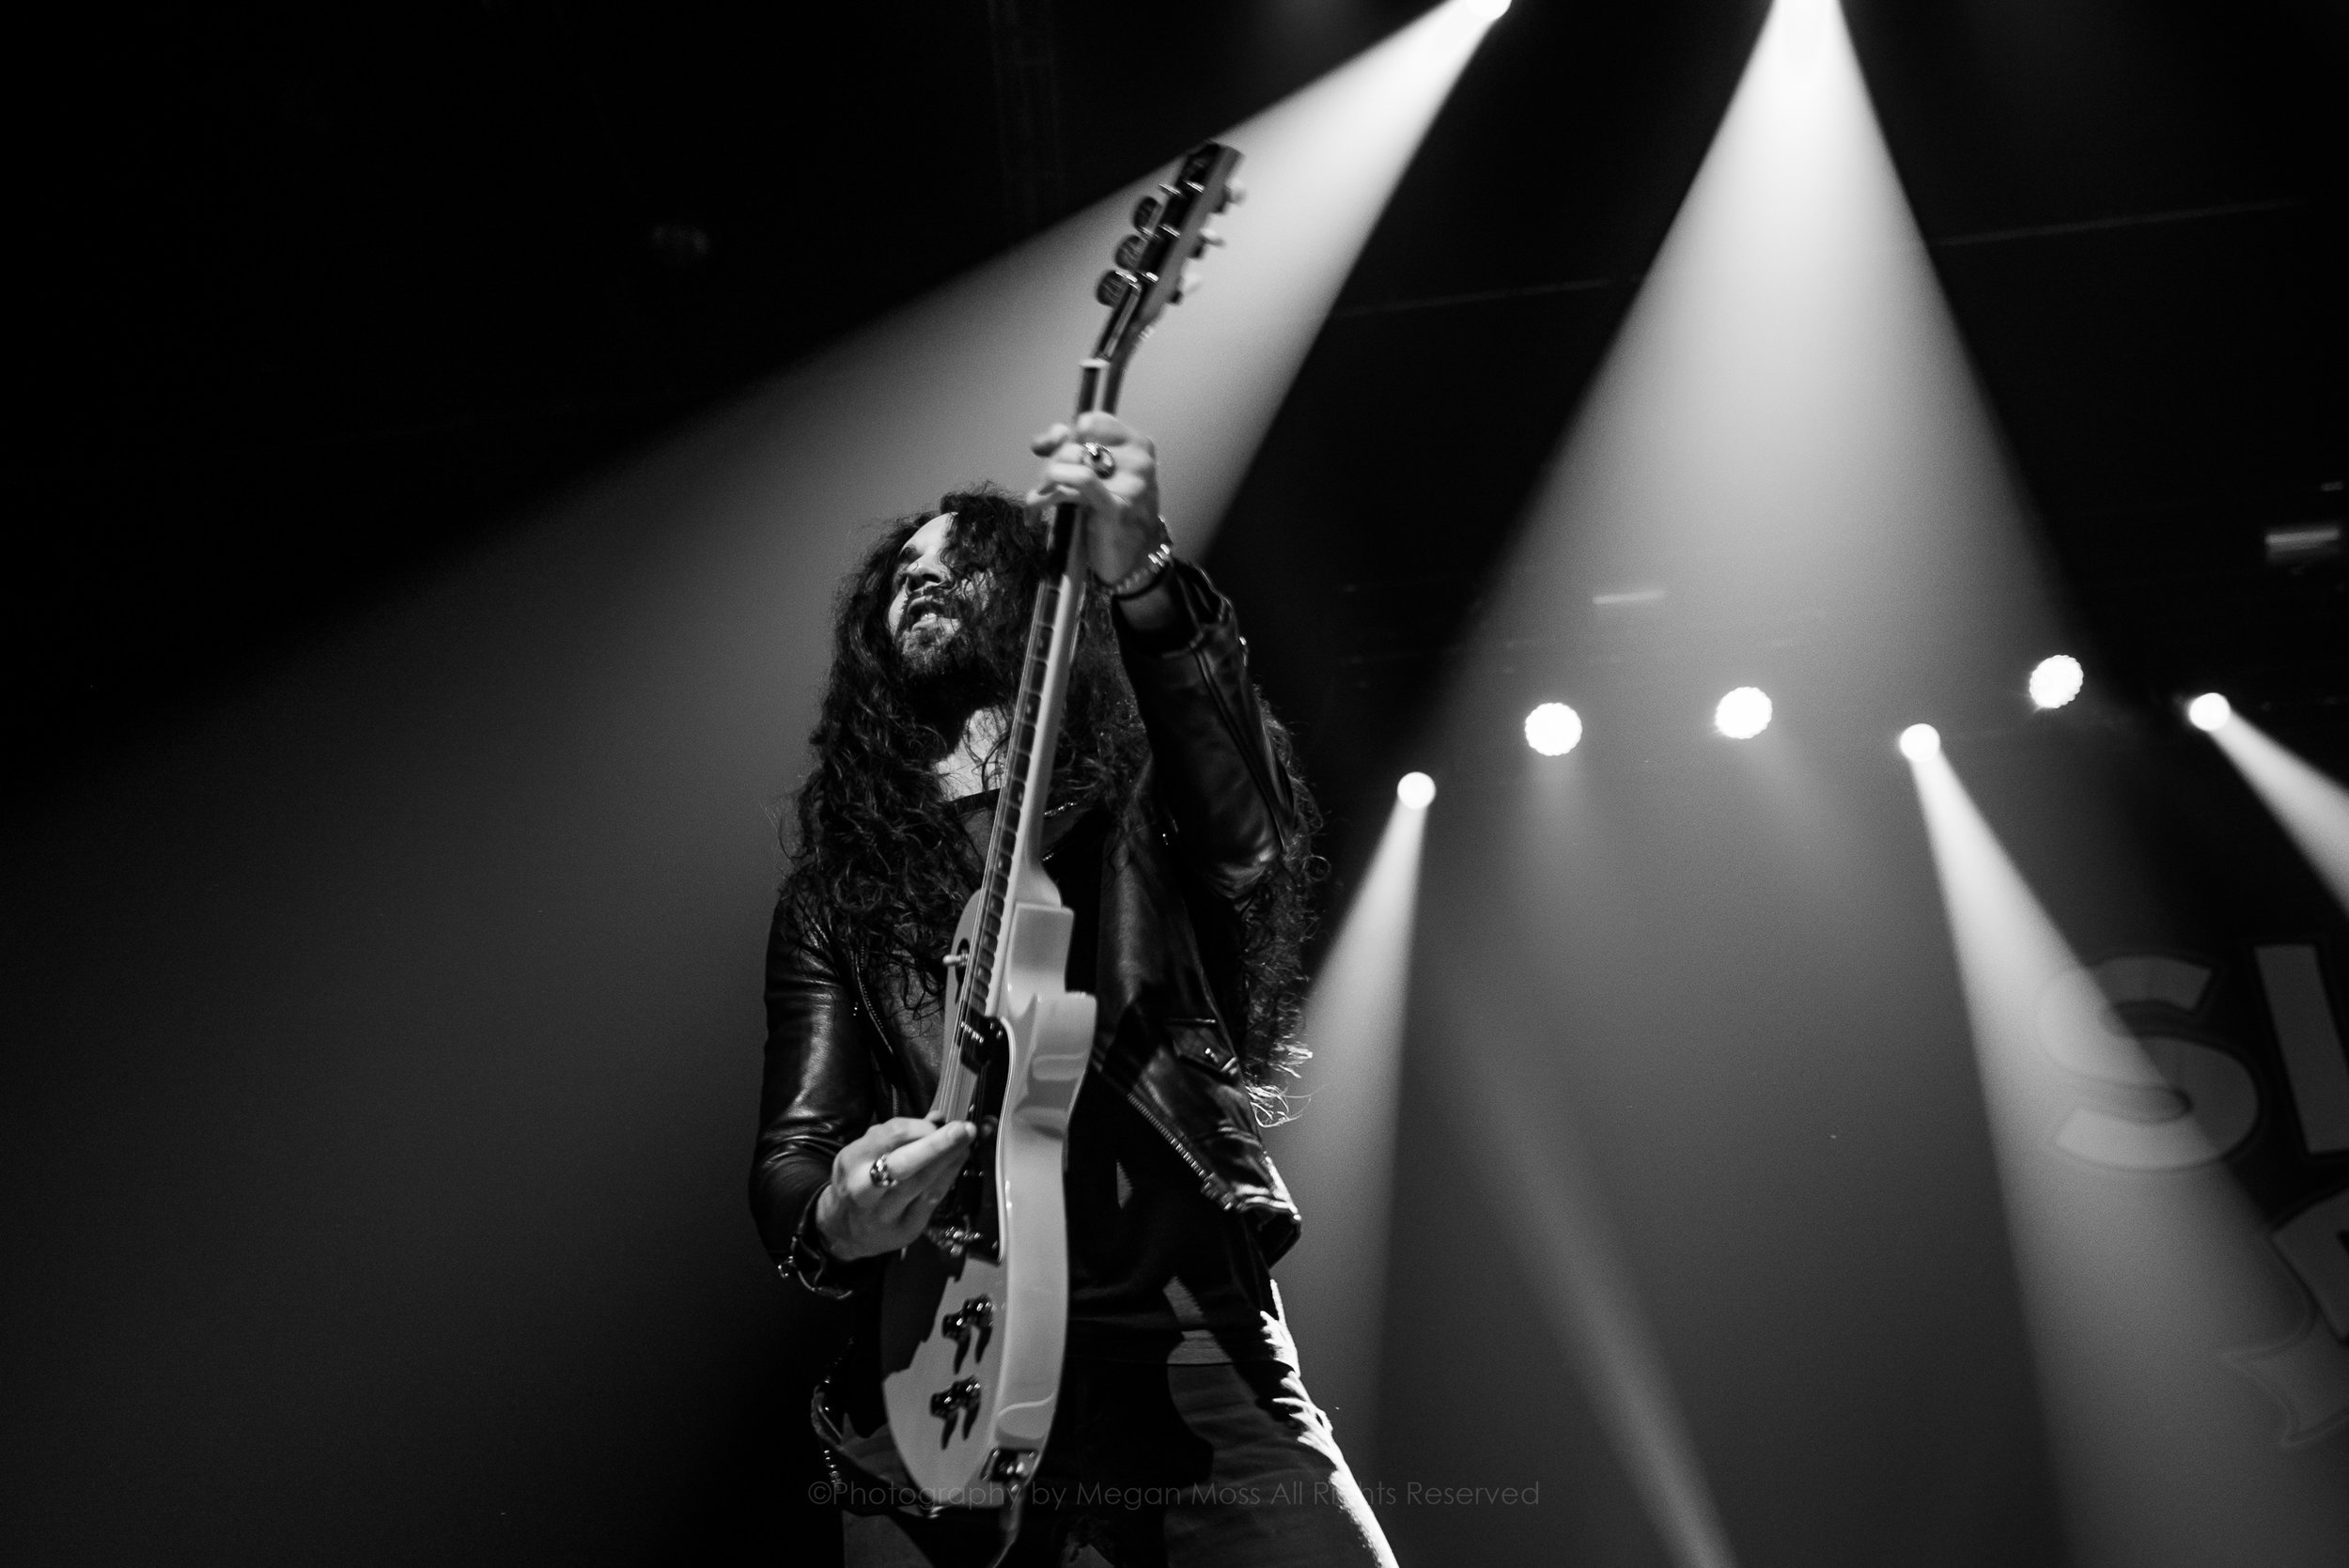 SLASH&MKK_PhotoMeganMoss-27.jpg